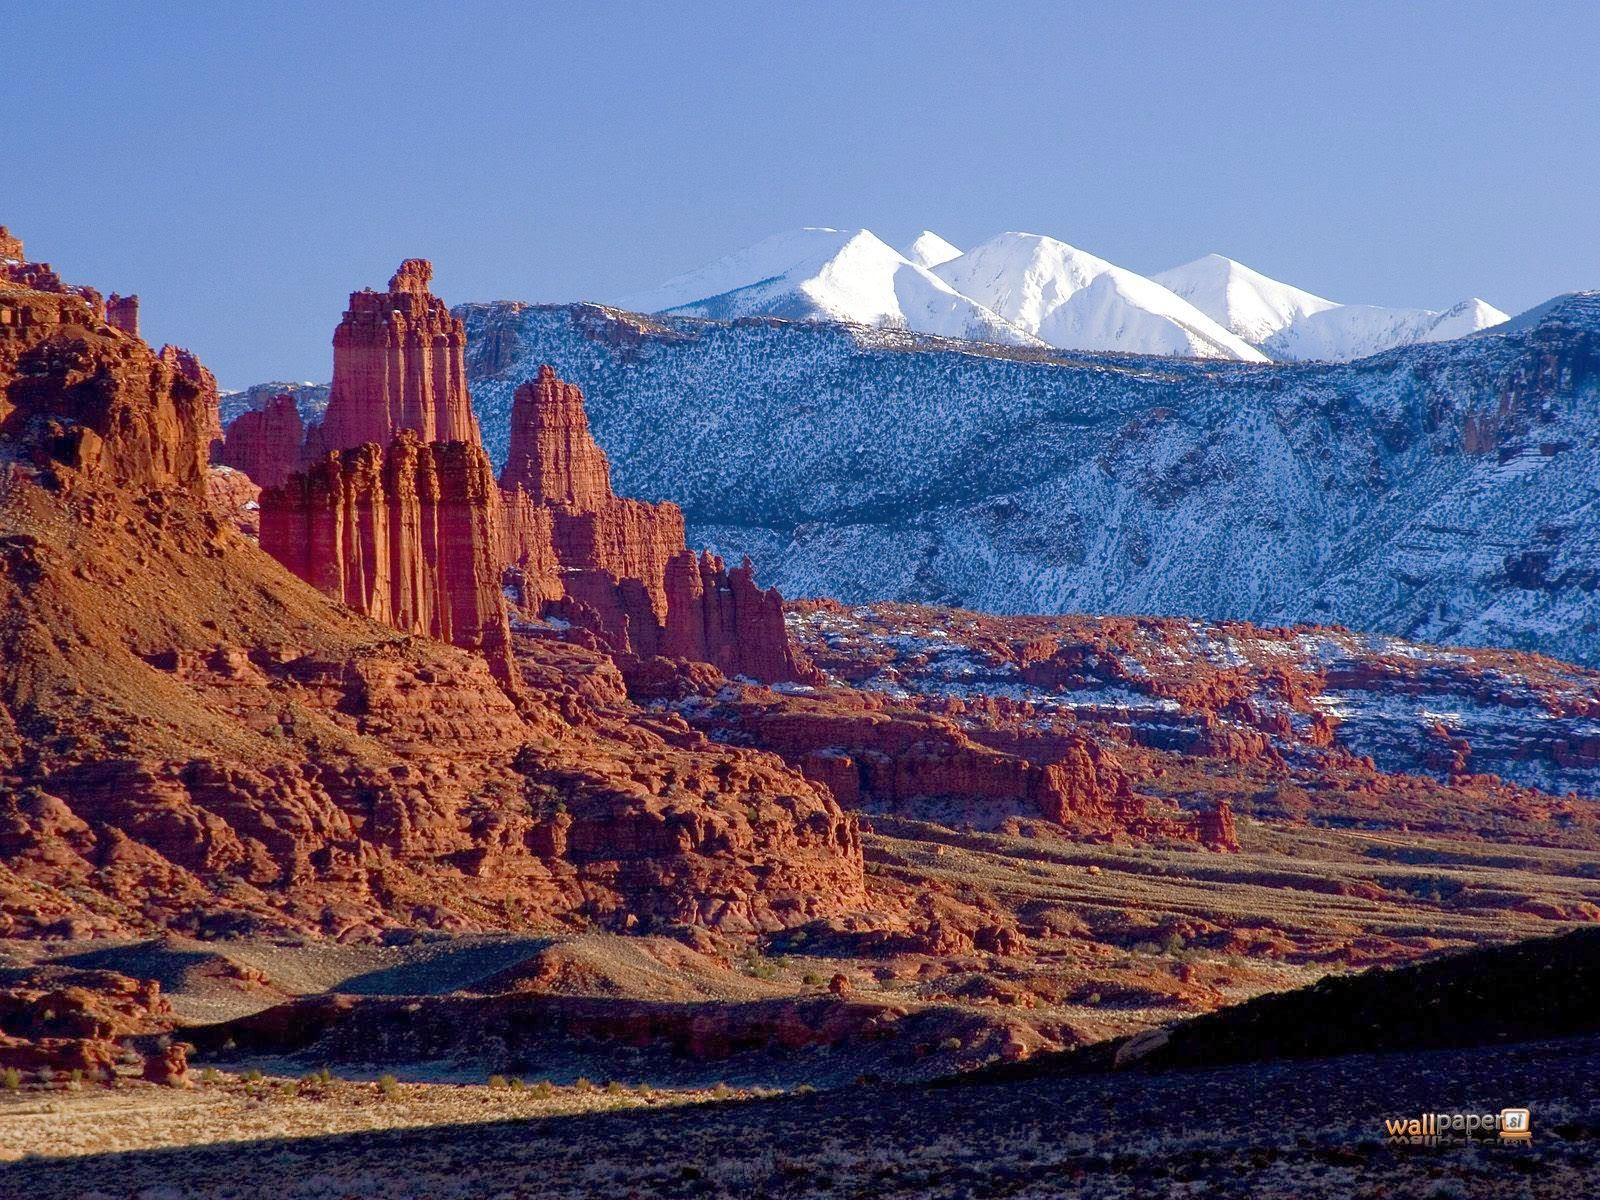 http://2.bp.blogspot.com/-KZn4dq-lhGU/Tk1BROrRJpI/AAAAAAAABLk/Lq86Rf0qJv4/s1600/La-Sal-Mountains-and-Indian-Creek-Area-Near-Moab-in-Winter-Utah-Wallpaper.jpg